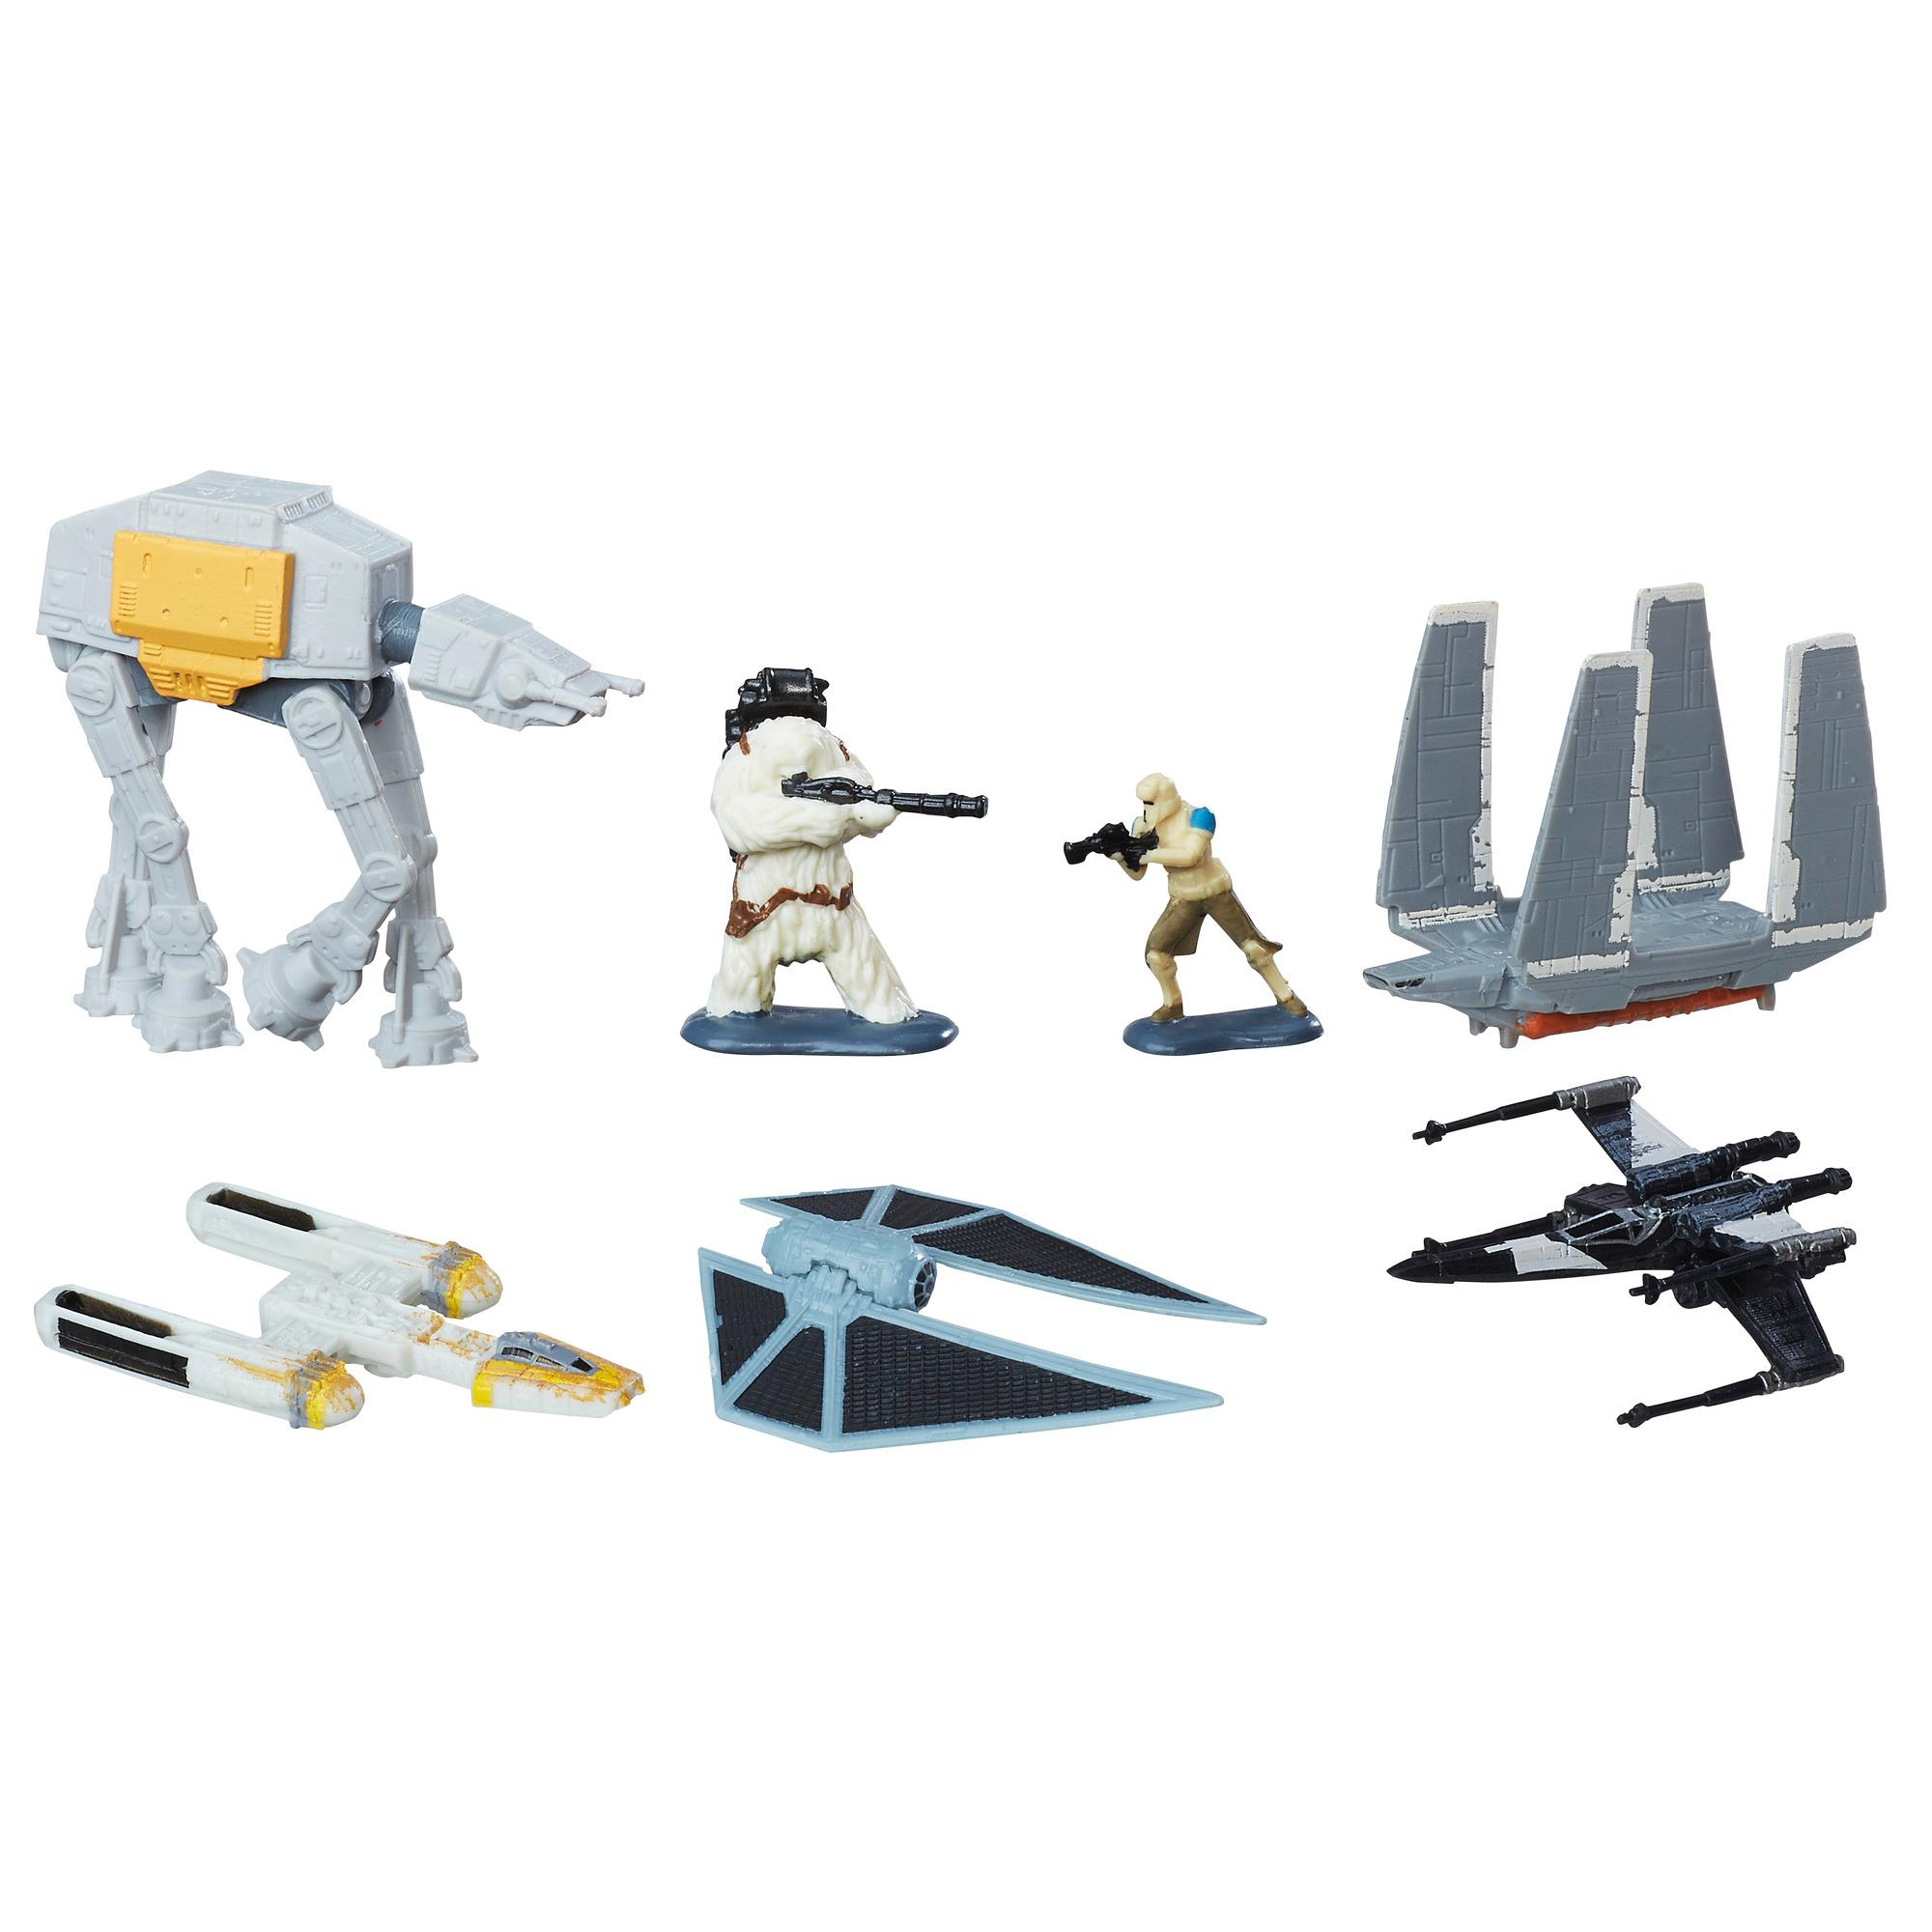 Star Wars S1 Veh Escape With The Plans